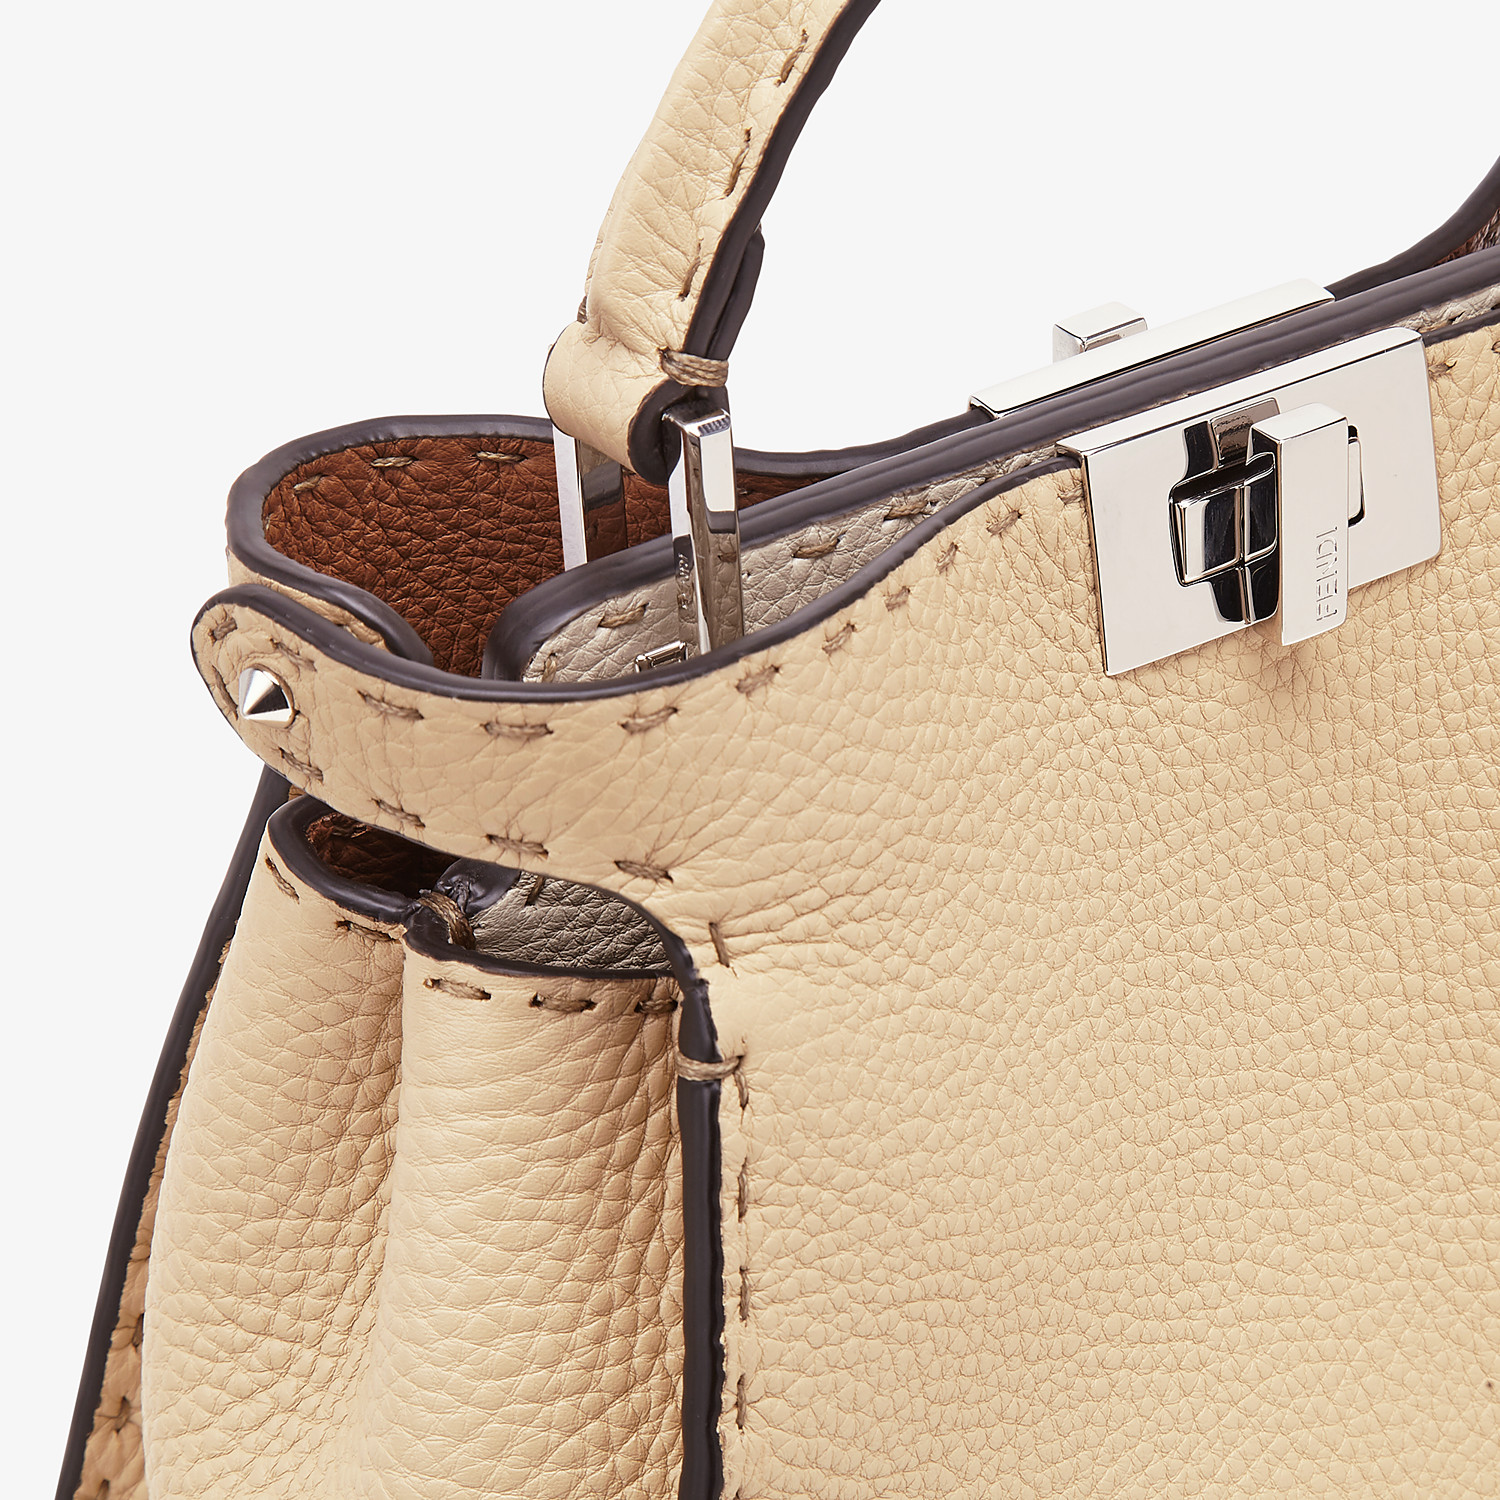 FENDI PEEKABOO ICONIC ESSENTIALLY - Beige Cuoio Romano leather bag - view 6 detail